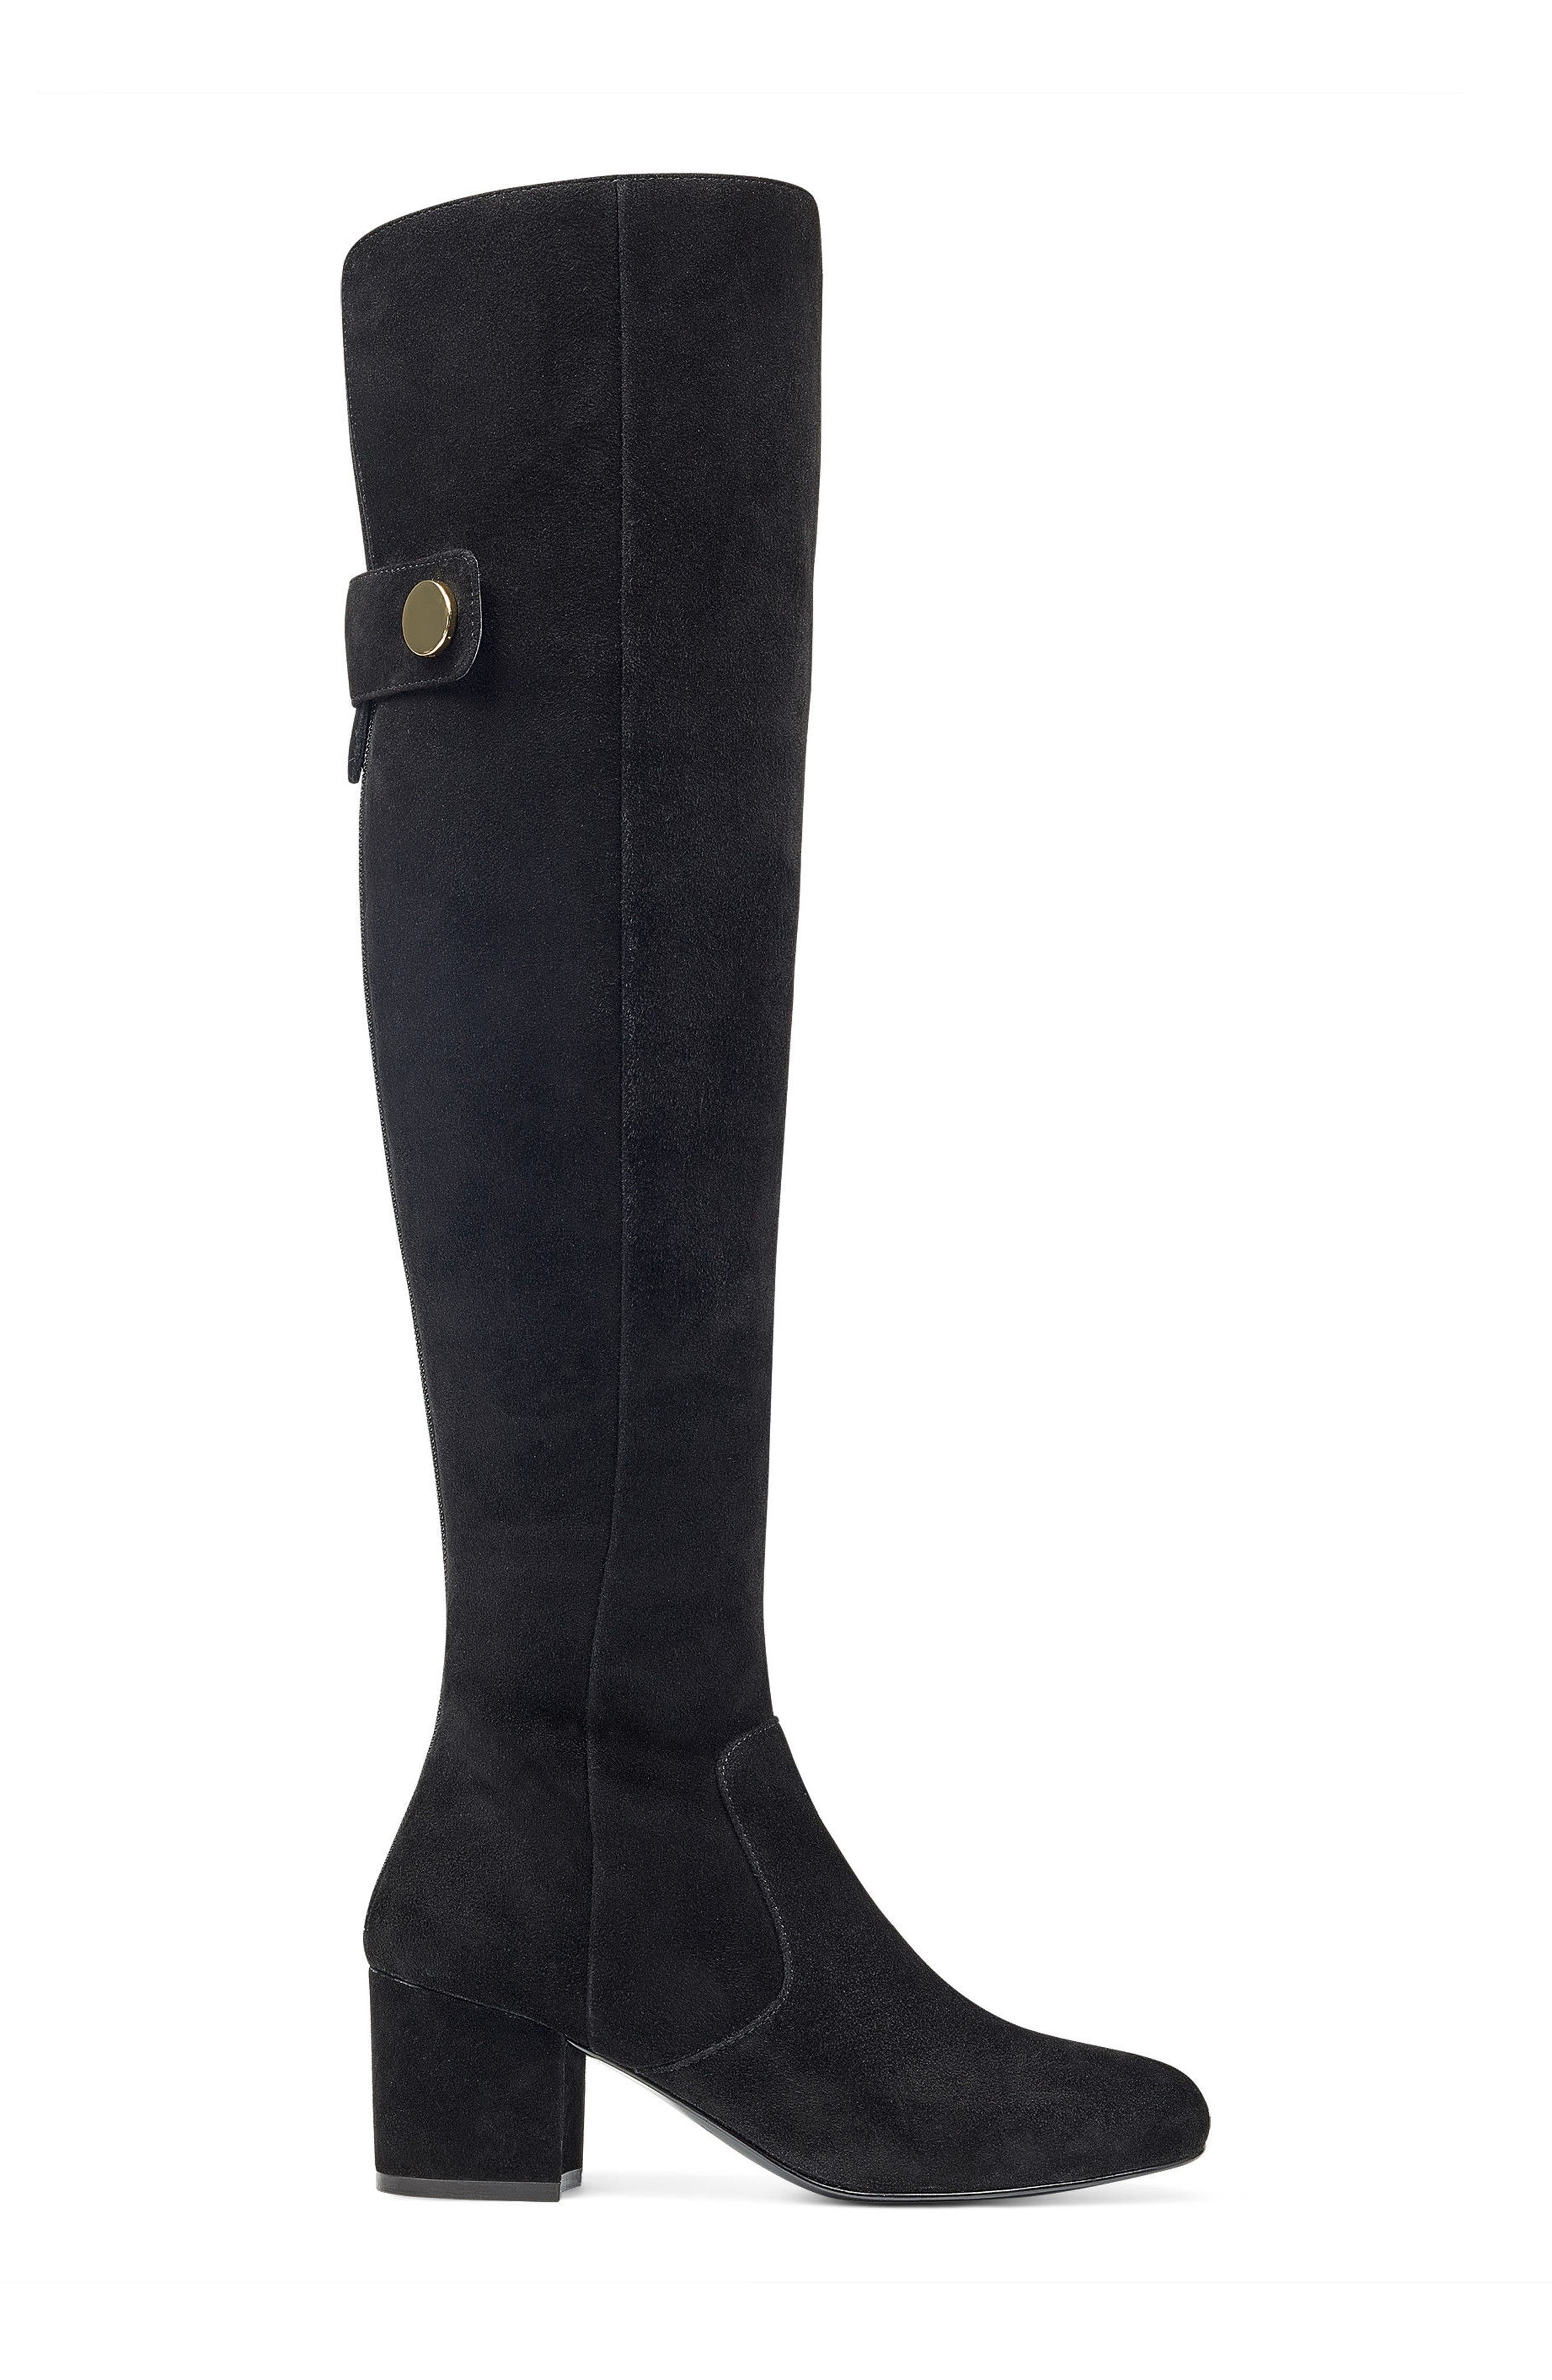 Queddy Over the Knee Boot,                             Alternate thumbnail 5, color,